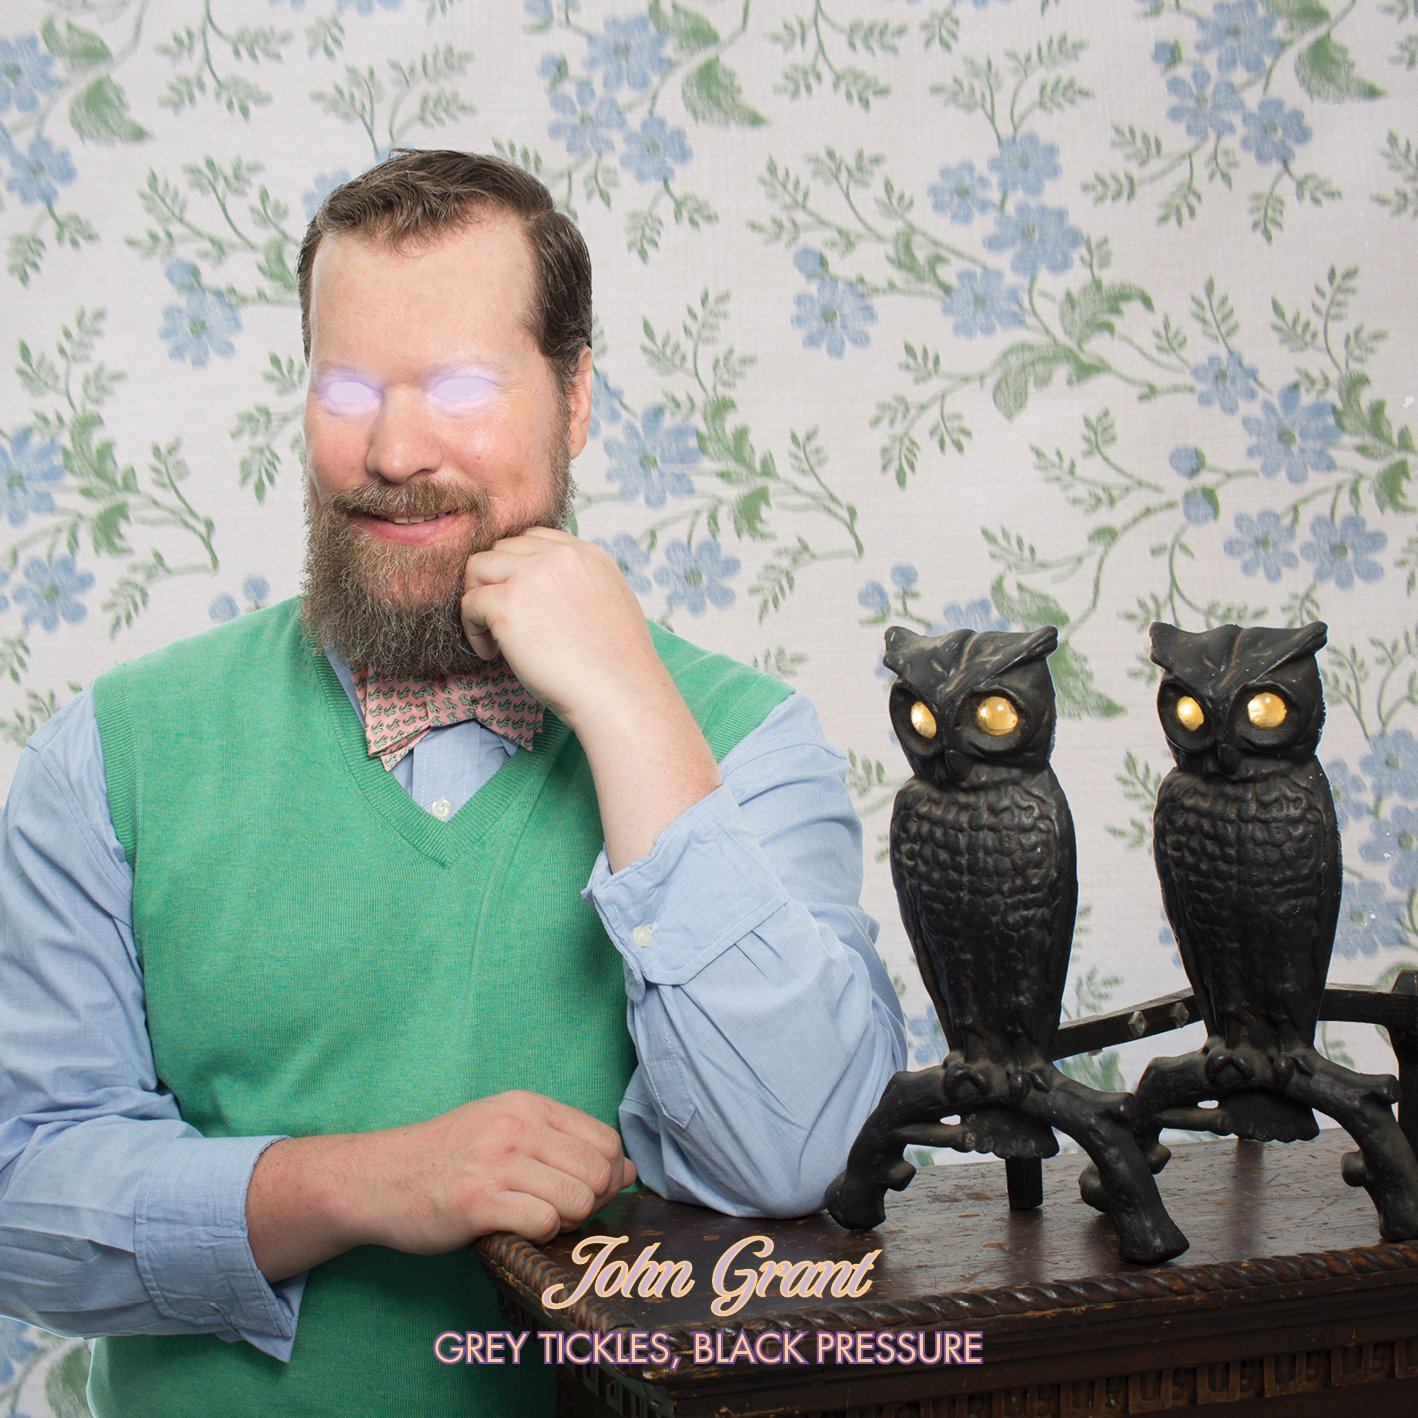 John-Grant-Grey-Tickles-Black-Pressure-Packshot.jpg.pagespeed.ic_.xFCItkNJJh